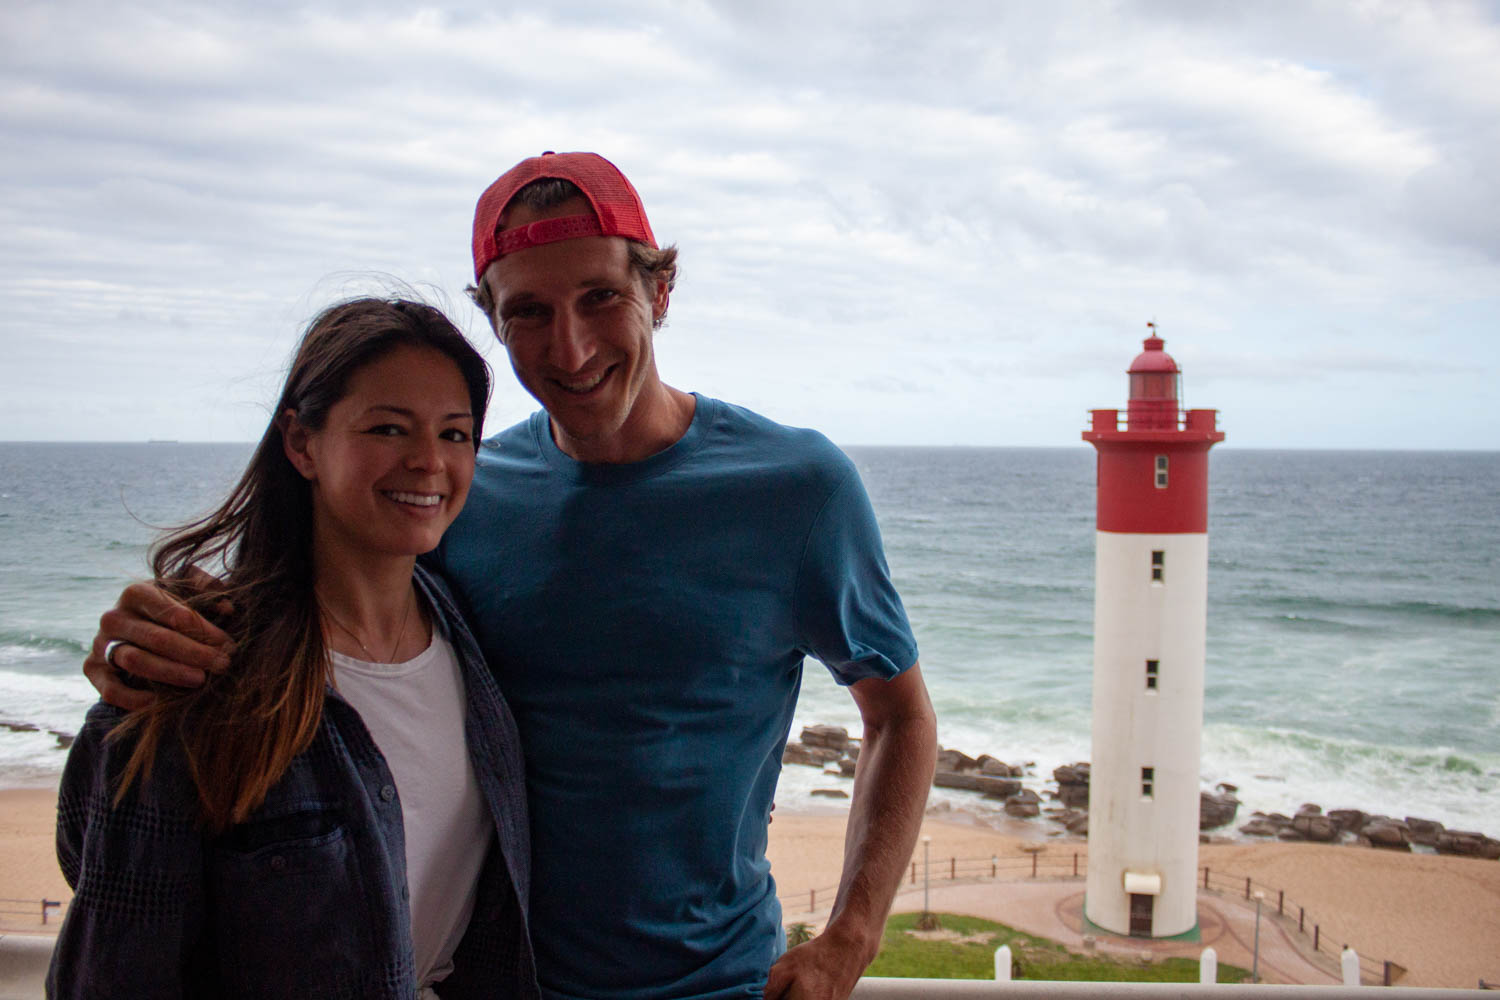 Chris and Kim in front of Lighthouse in Umhlanga